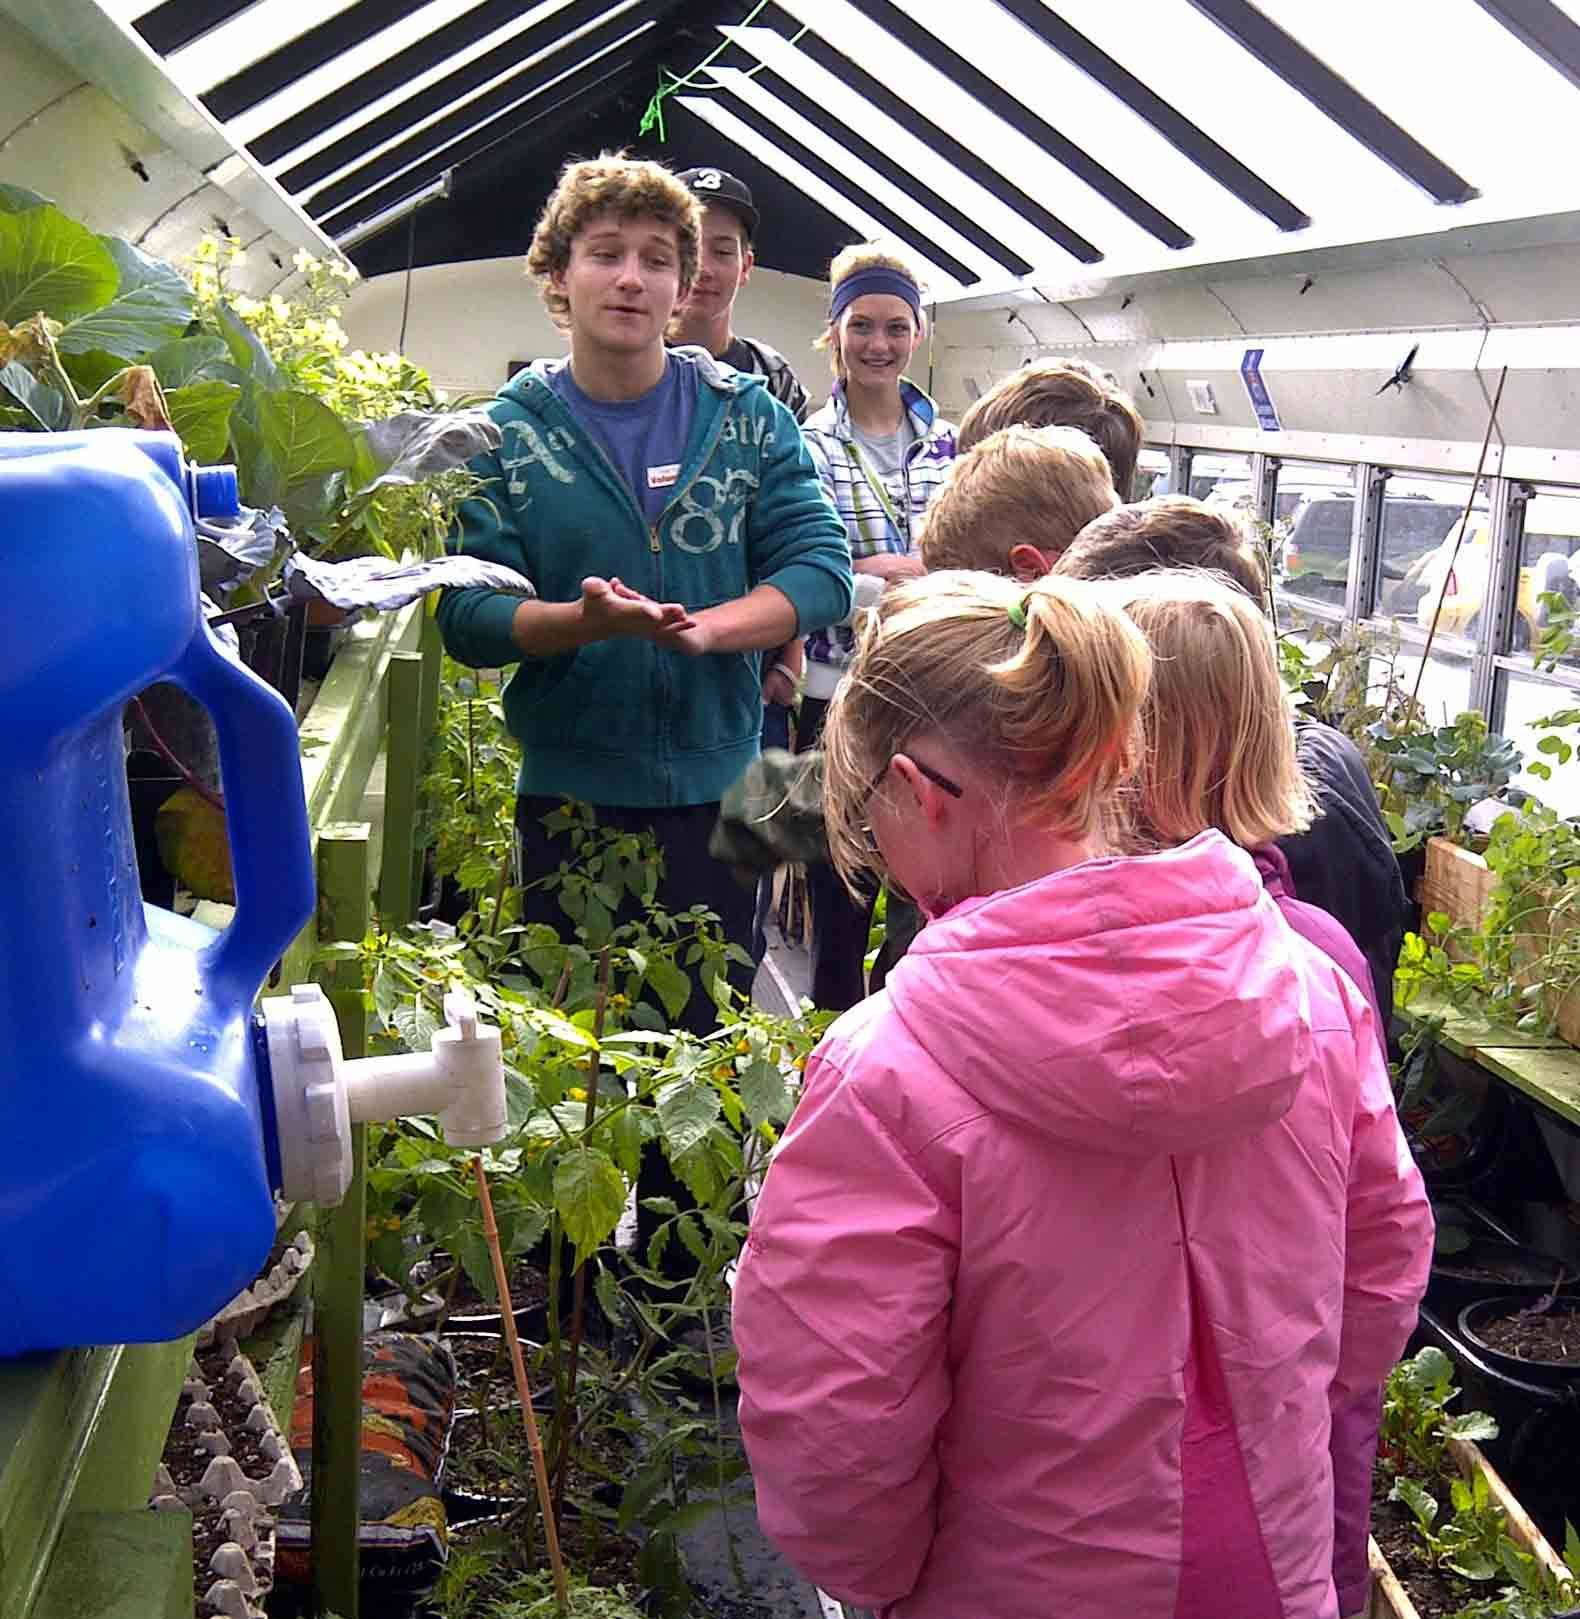 The bus visits elementary schools in Bozeman that can't afford gardens. Local high school students designed the lessons, connecting them to the district's science curriculum.